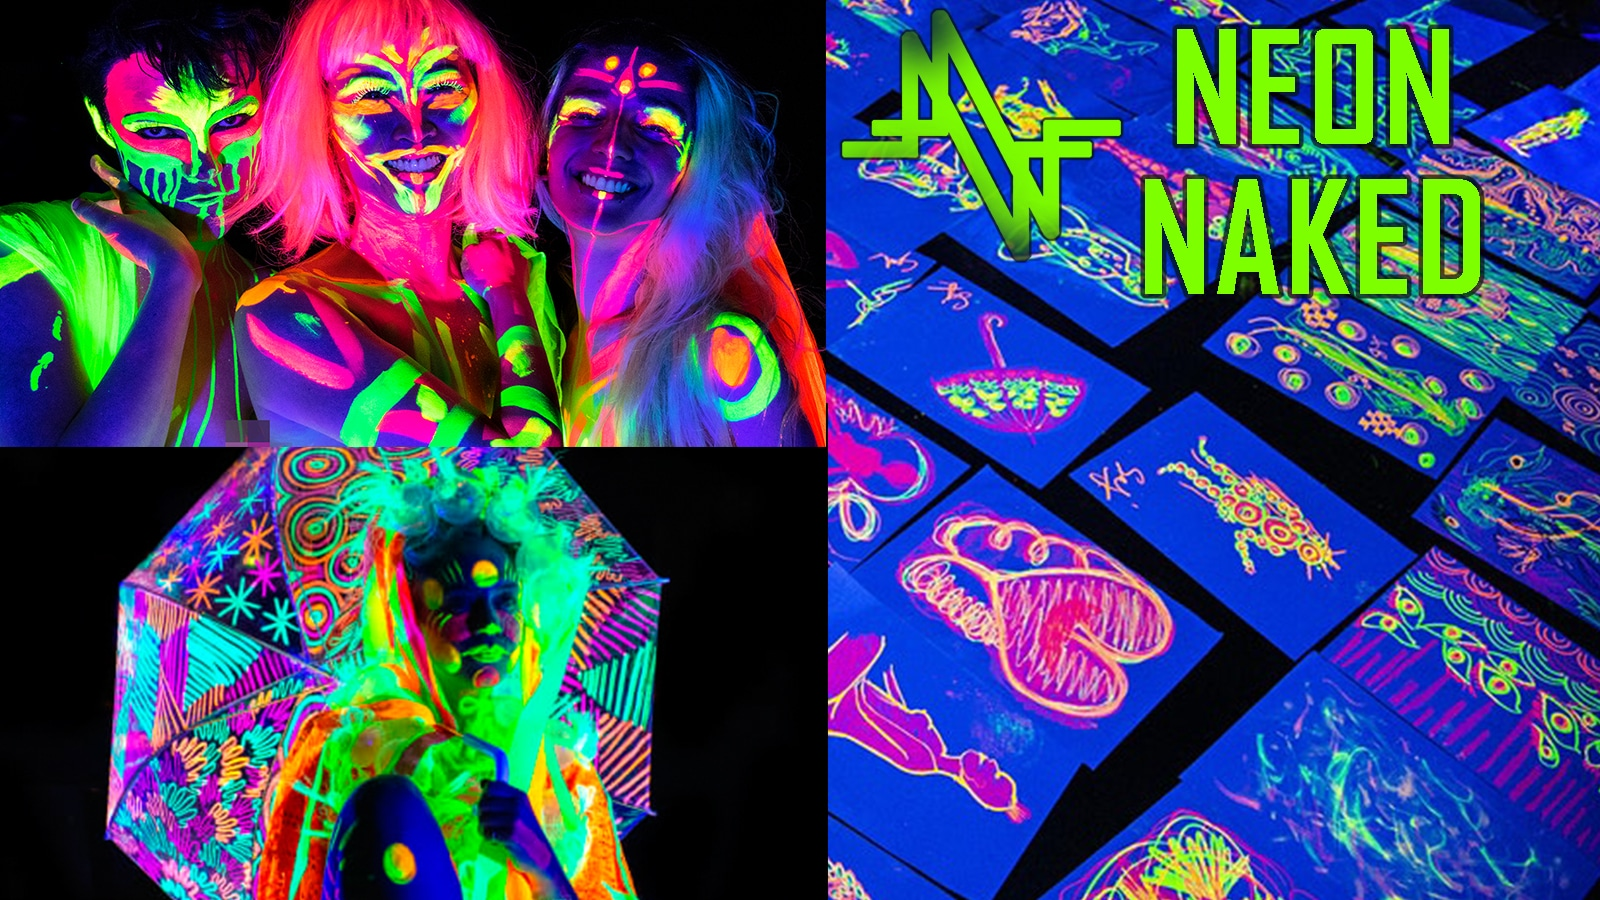 Neon Naked